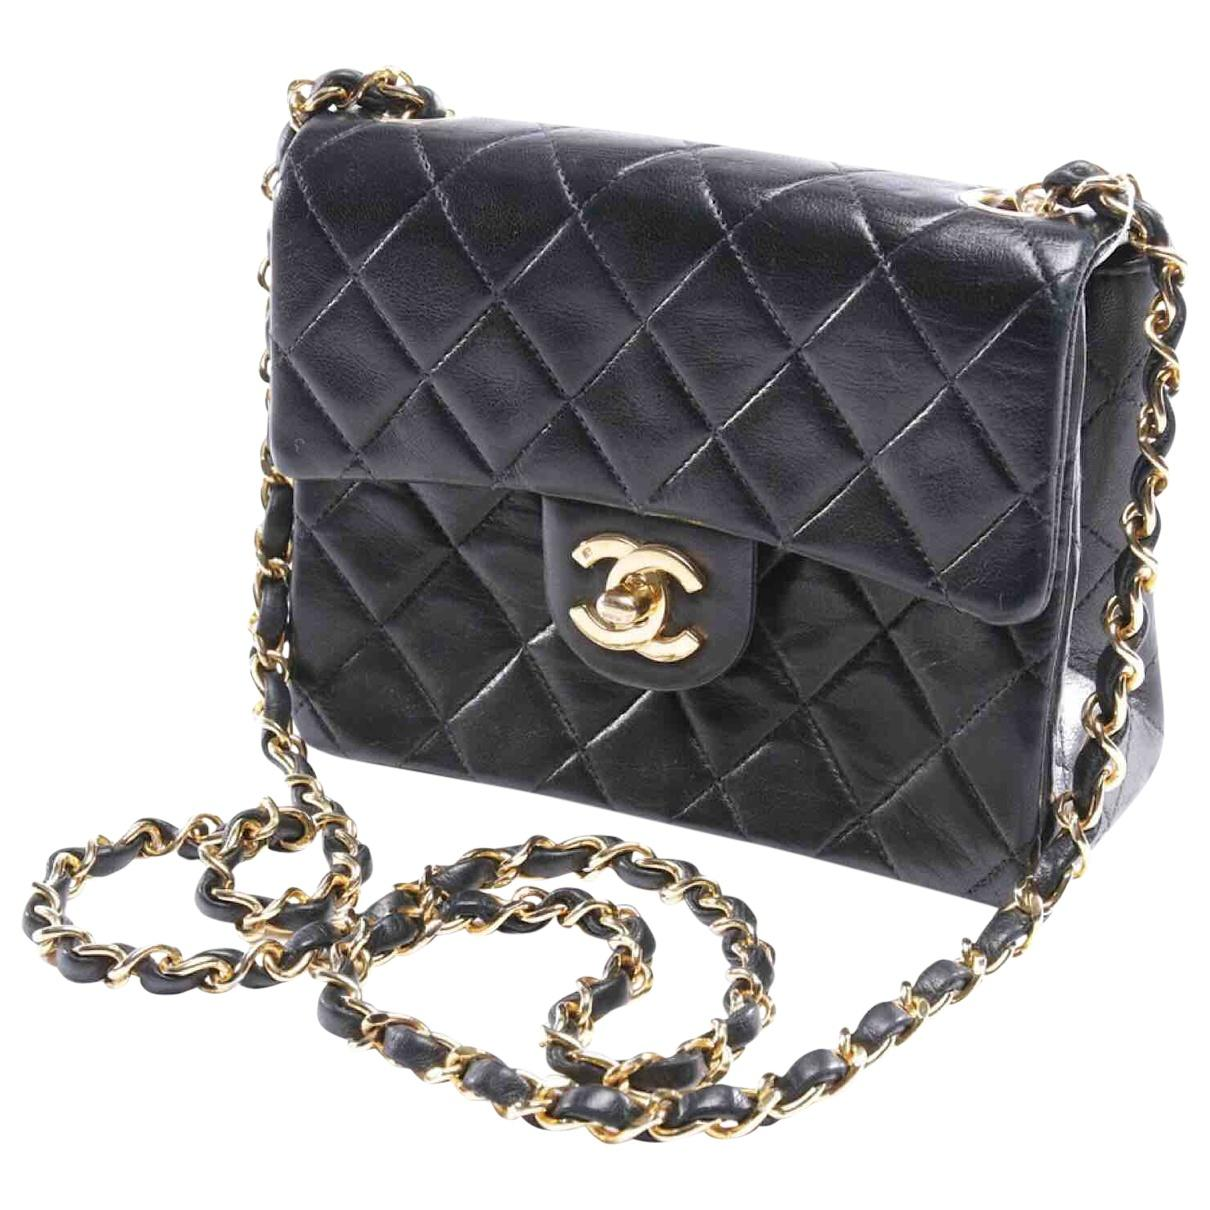 d23ff99fd947 Chanel Pre-owned Timeless Leather Crossbody Bag in Black - Lyst